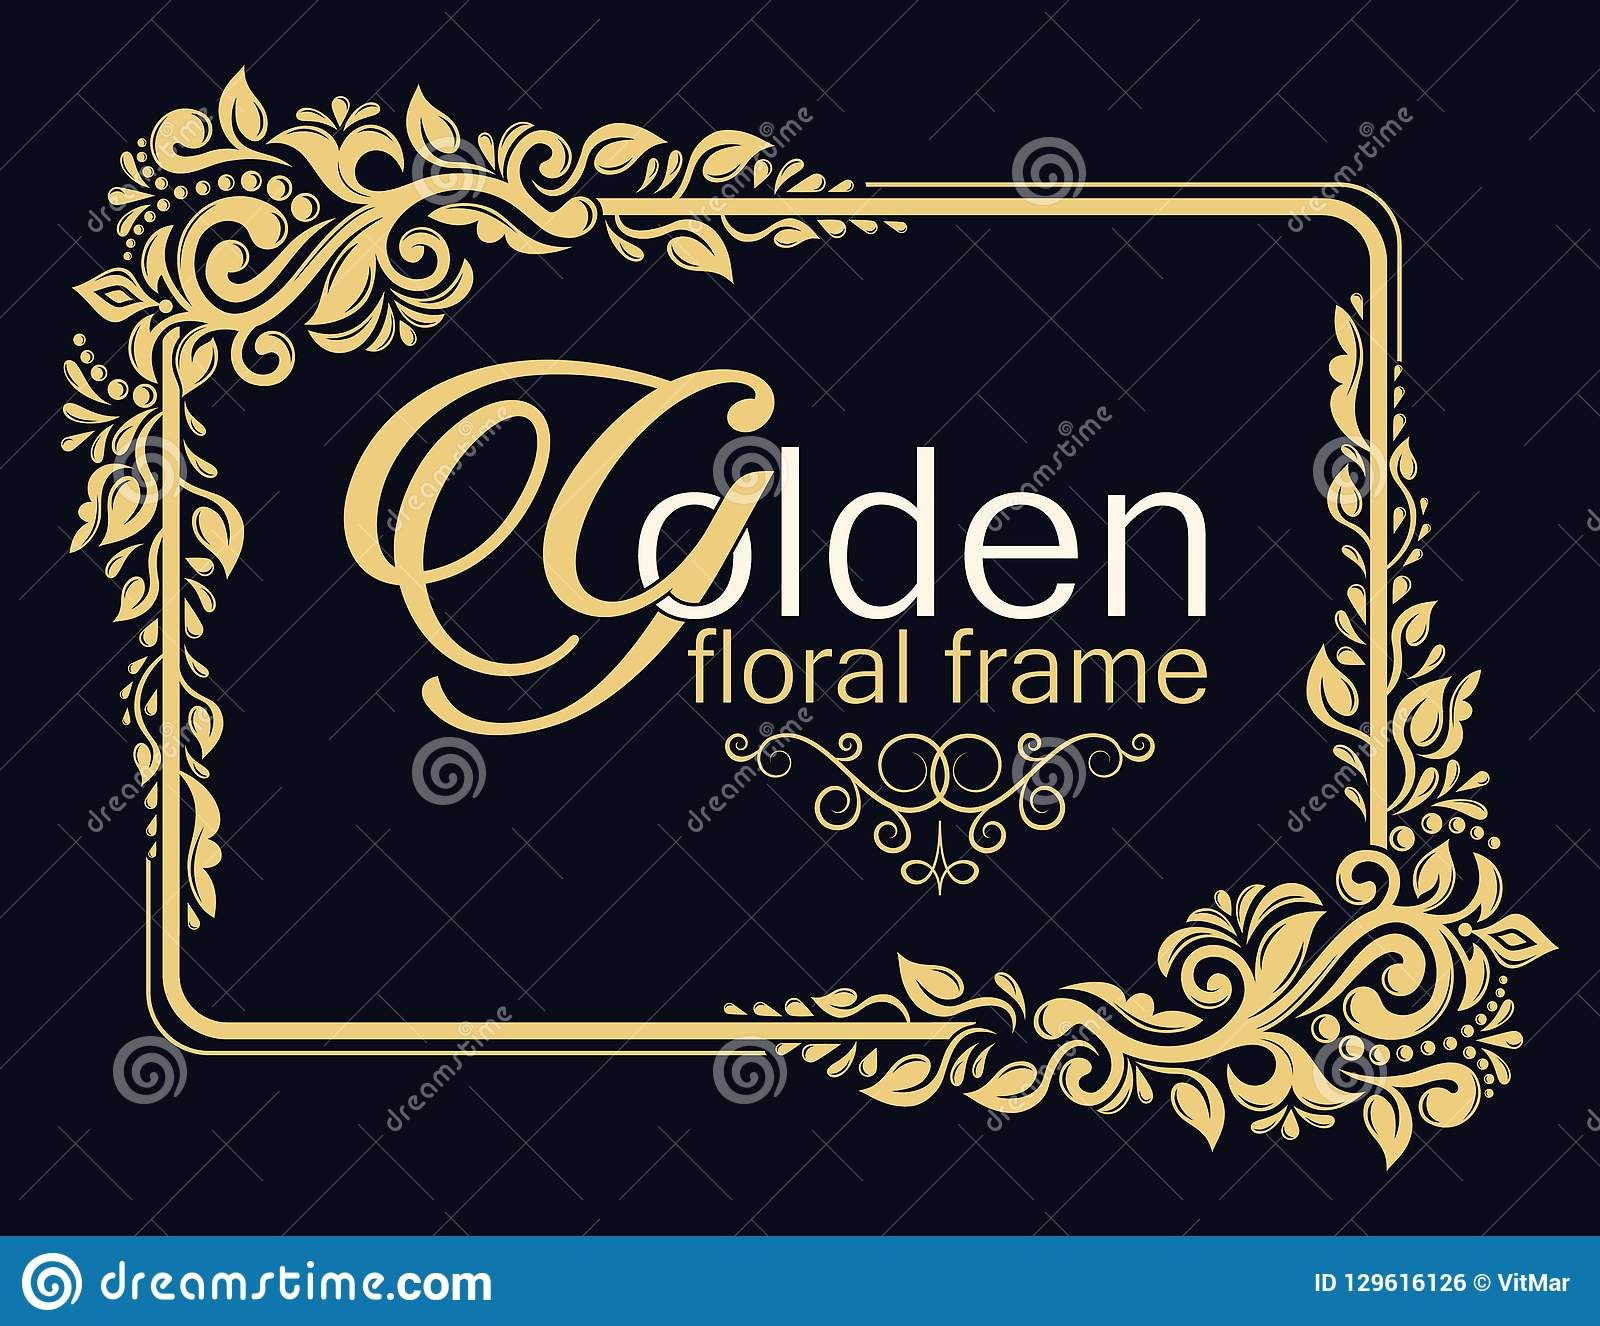 gold decorative floral frame and monogram initials vector heraldic